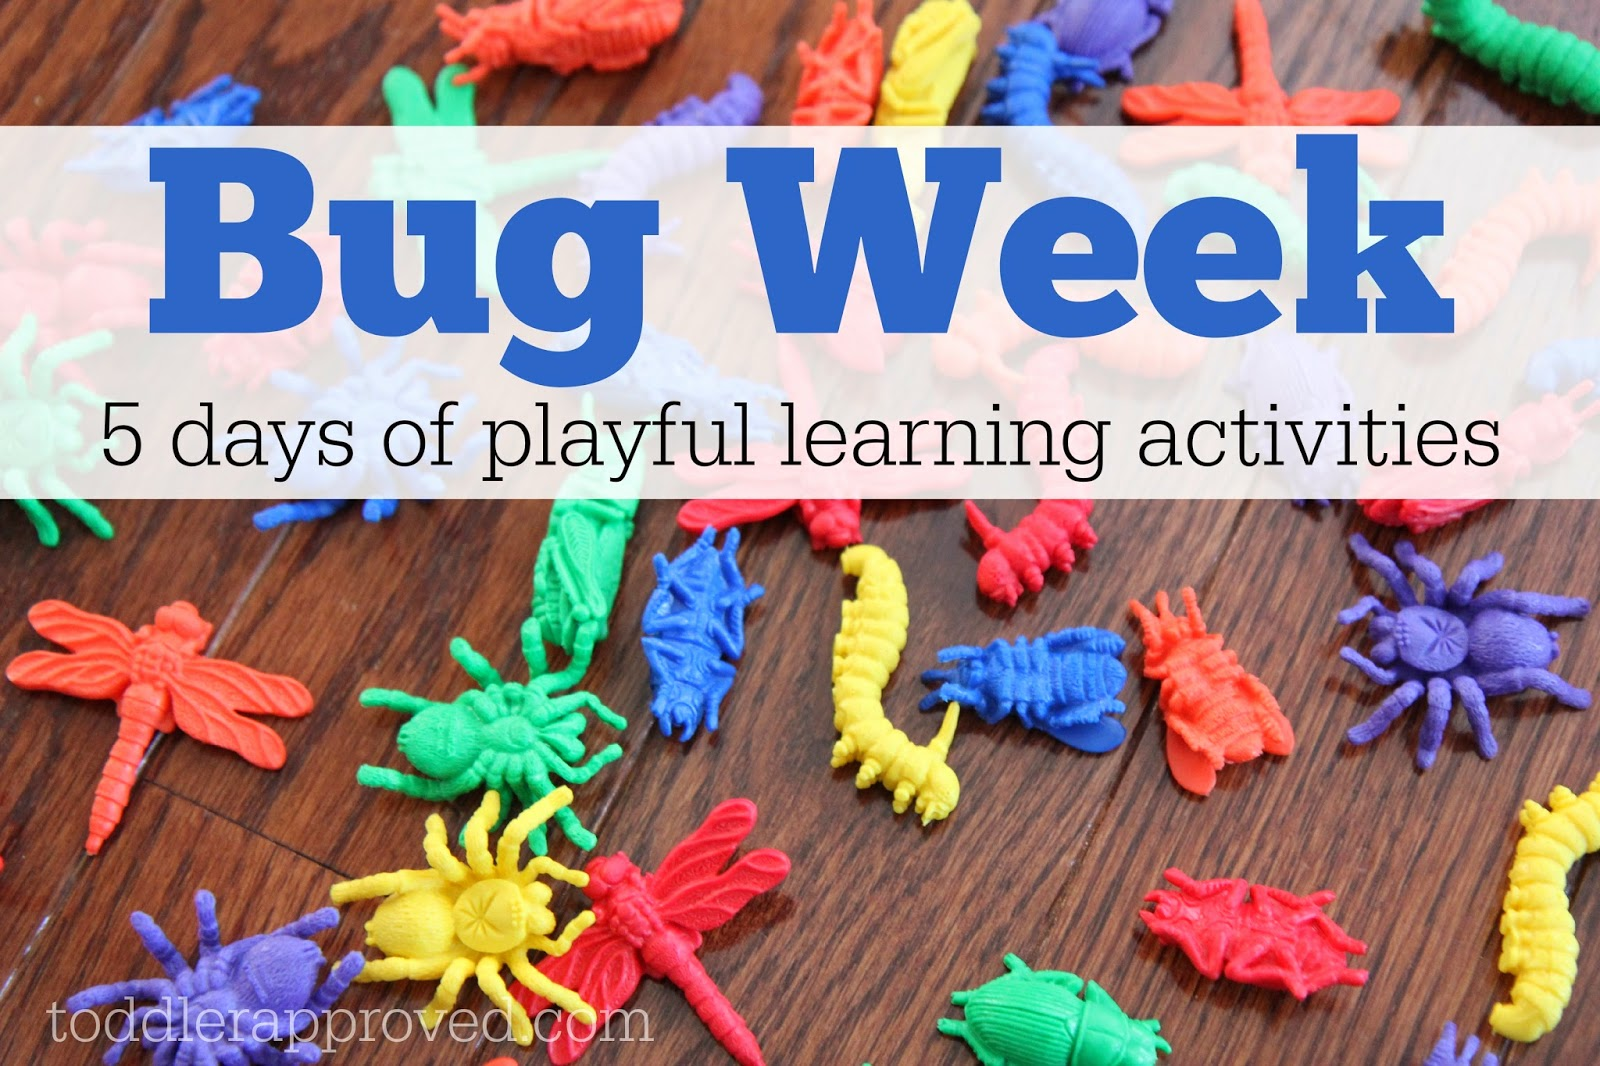 Toddler Approved!: Bug Week {Playful Learning Activities ...